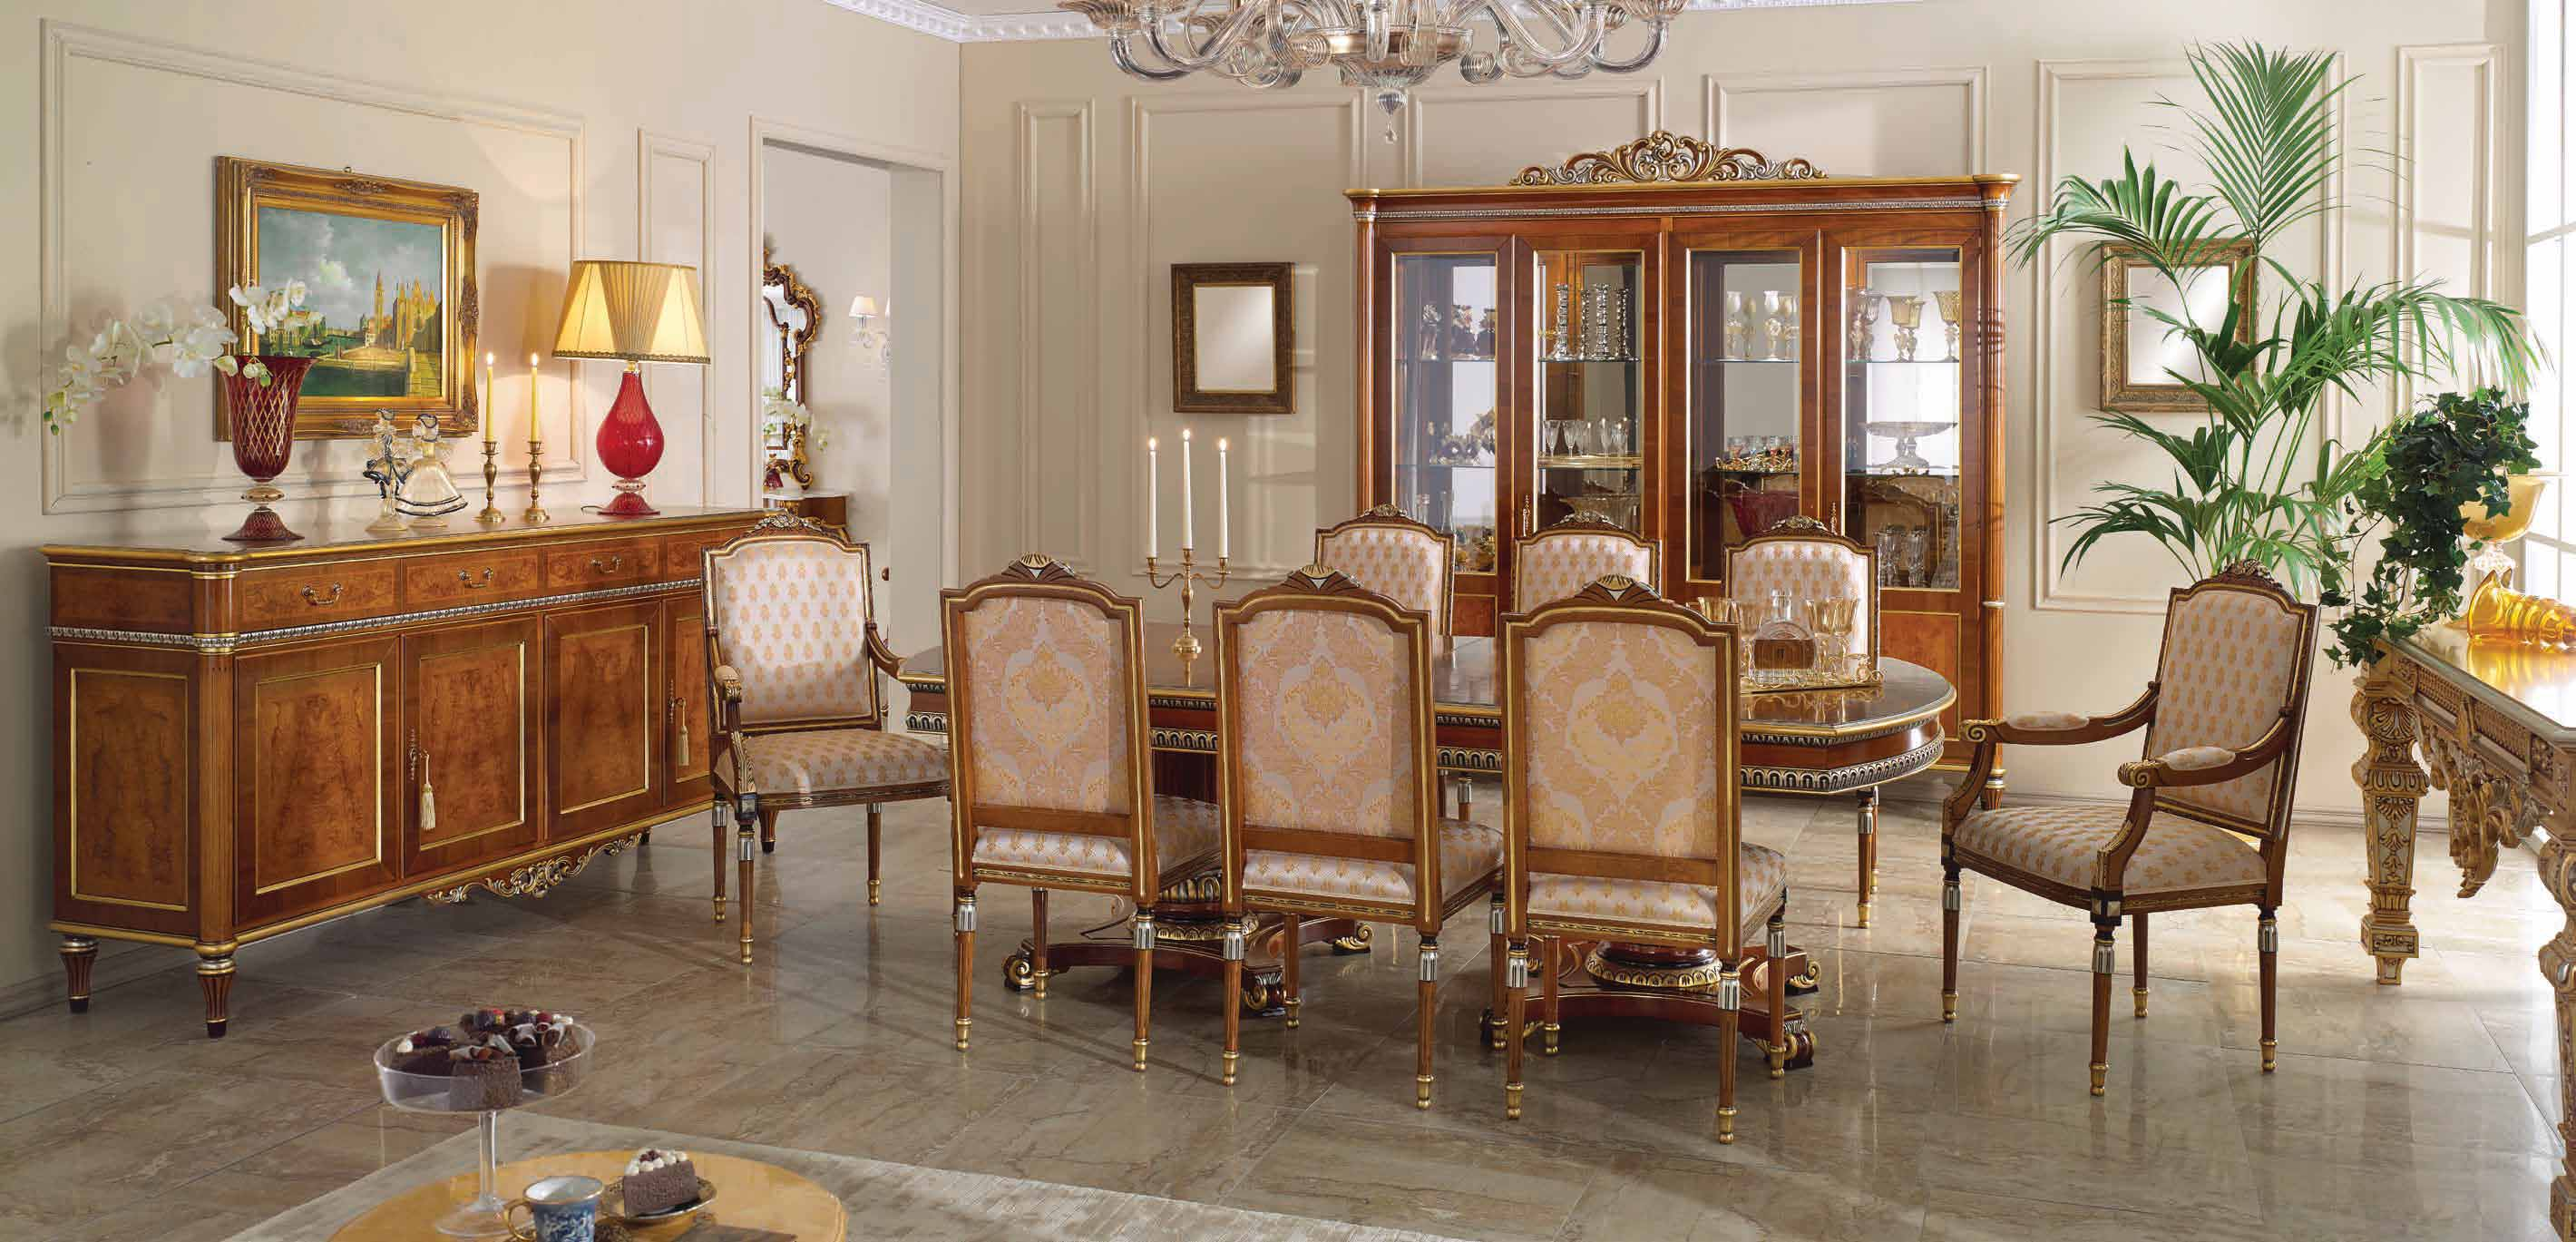 Luxury Royal Italian Dining Set Made In Italy